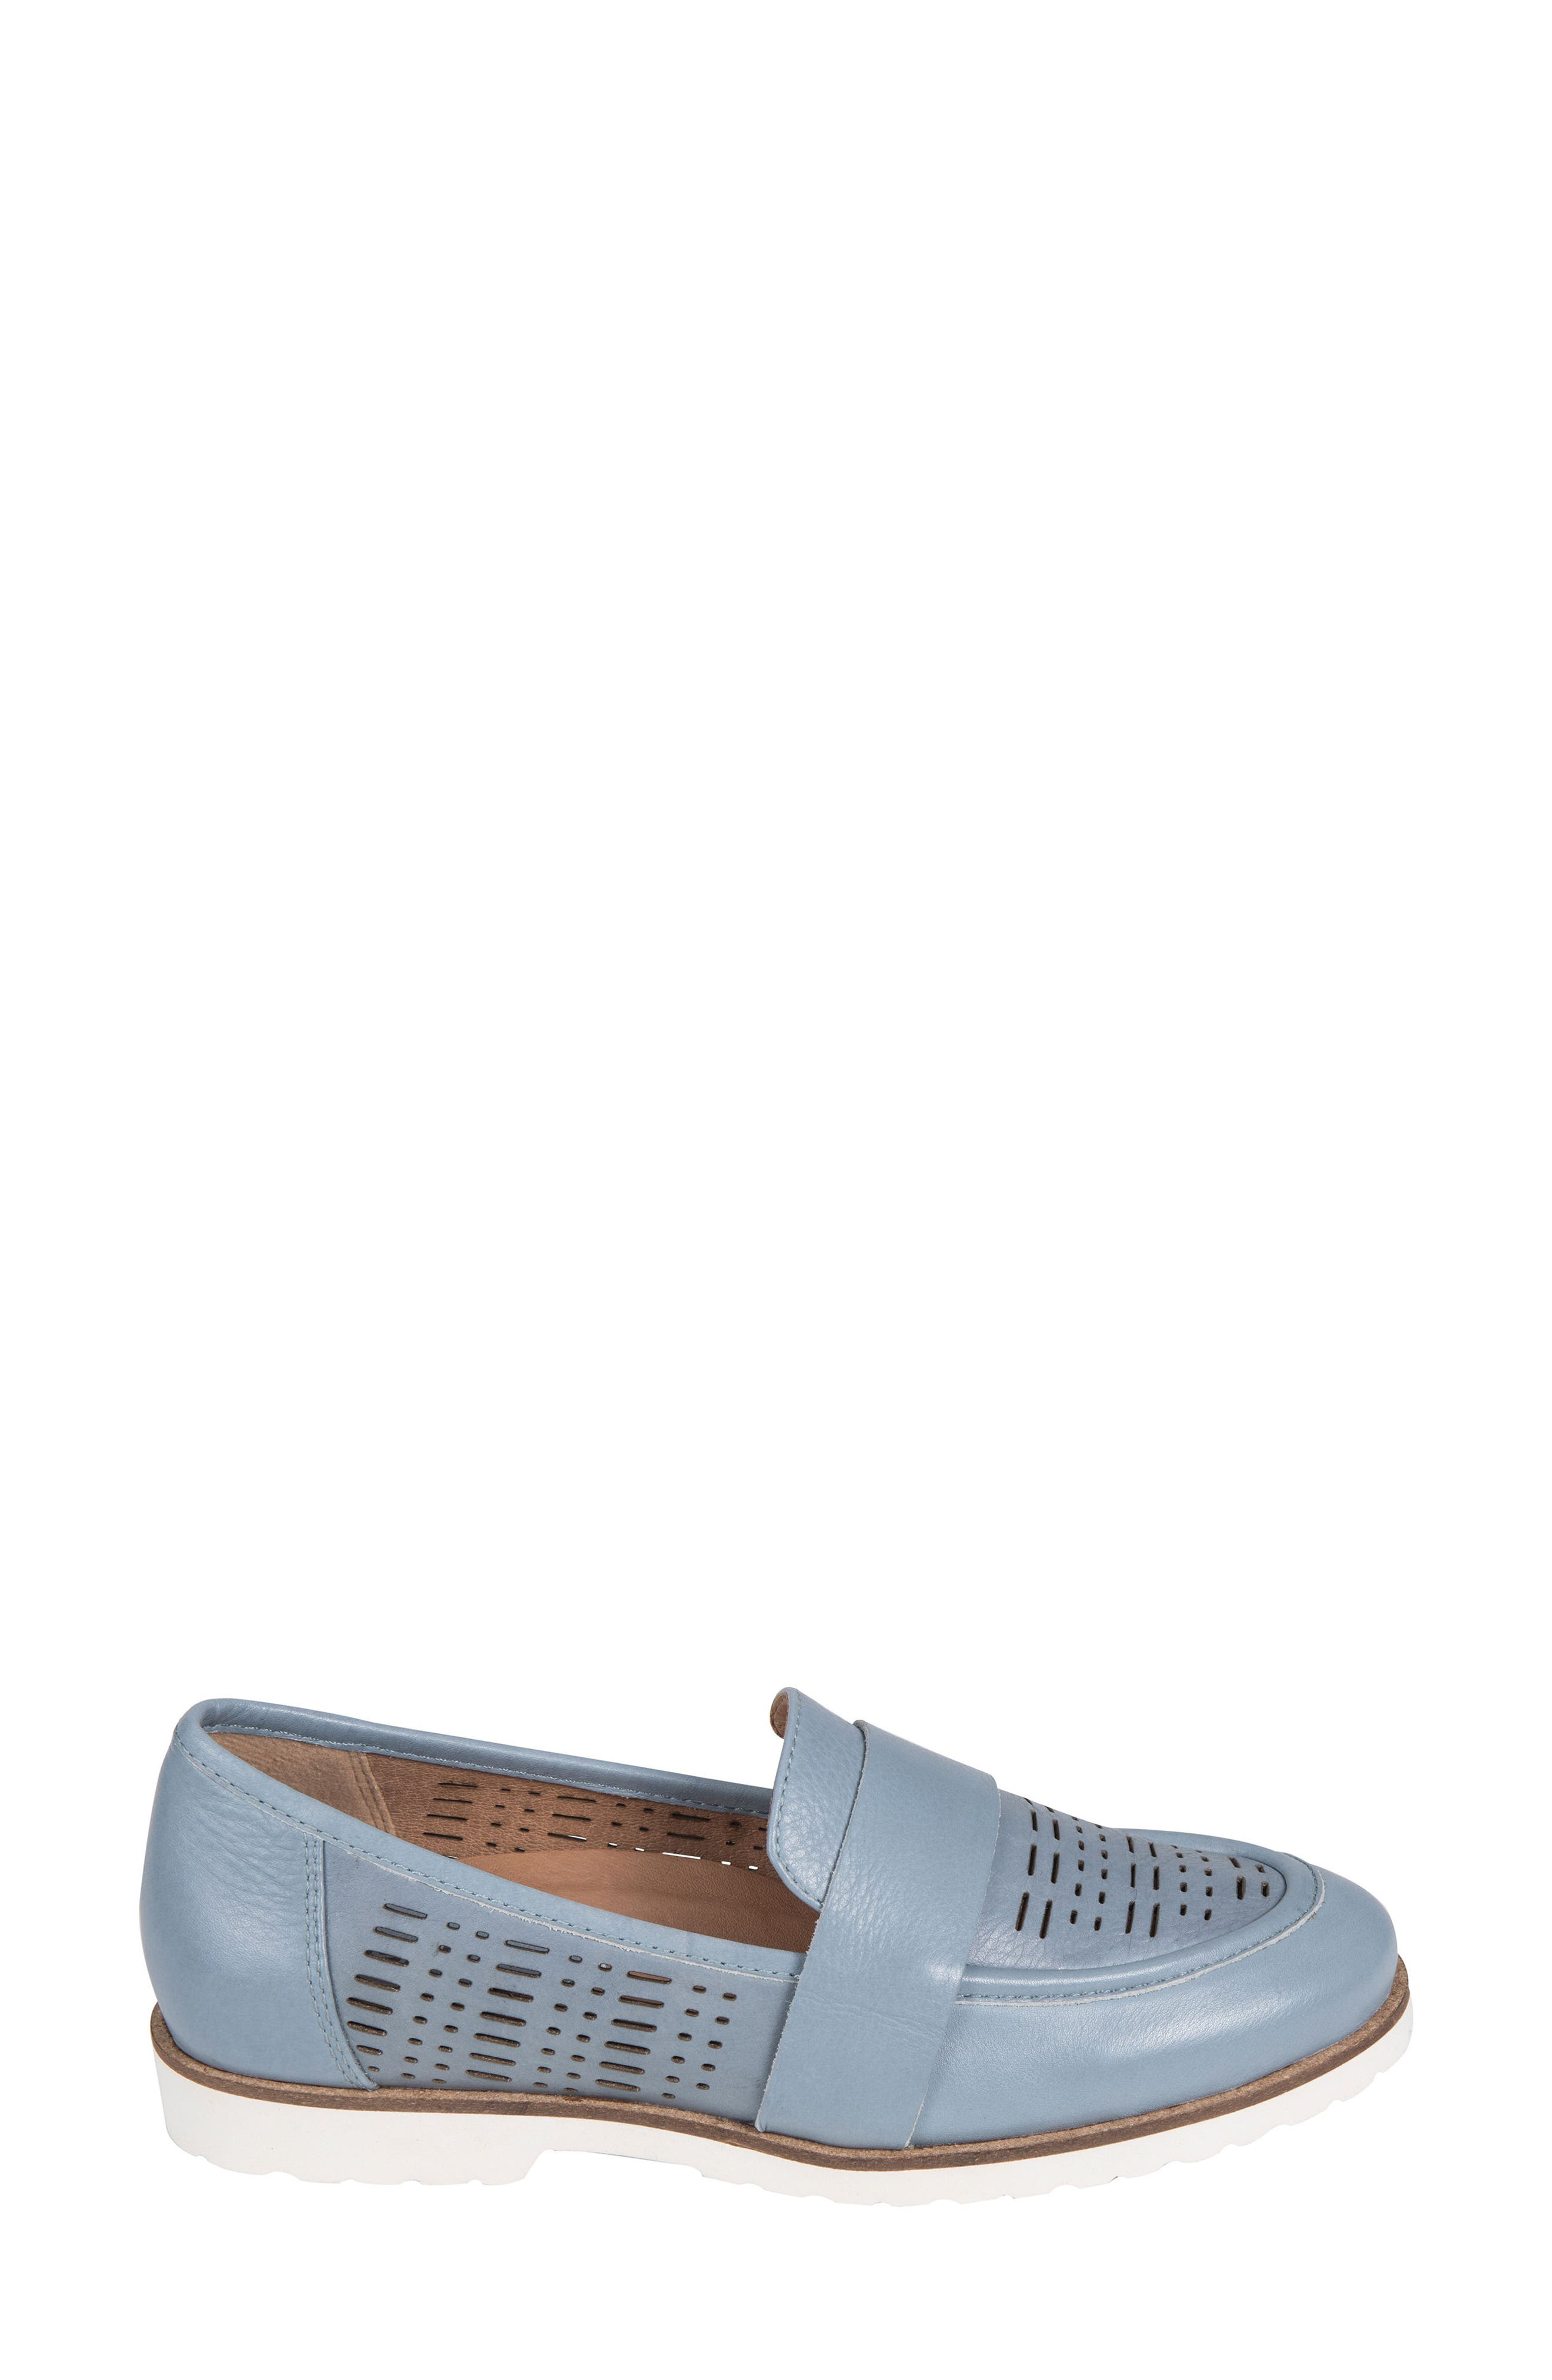 Masio Loafer,                             Alternate thumbnail 3, color,                             Blue Leather